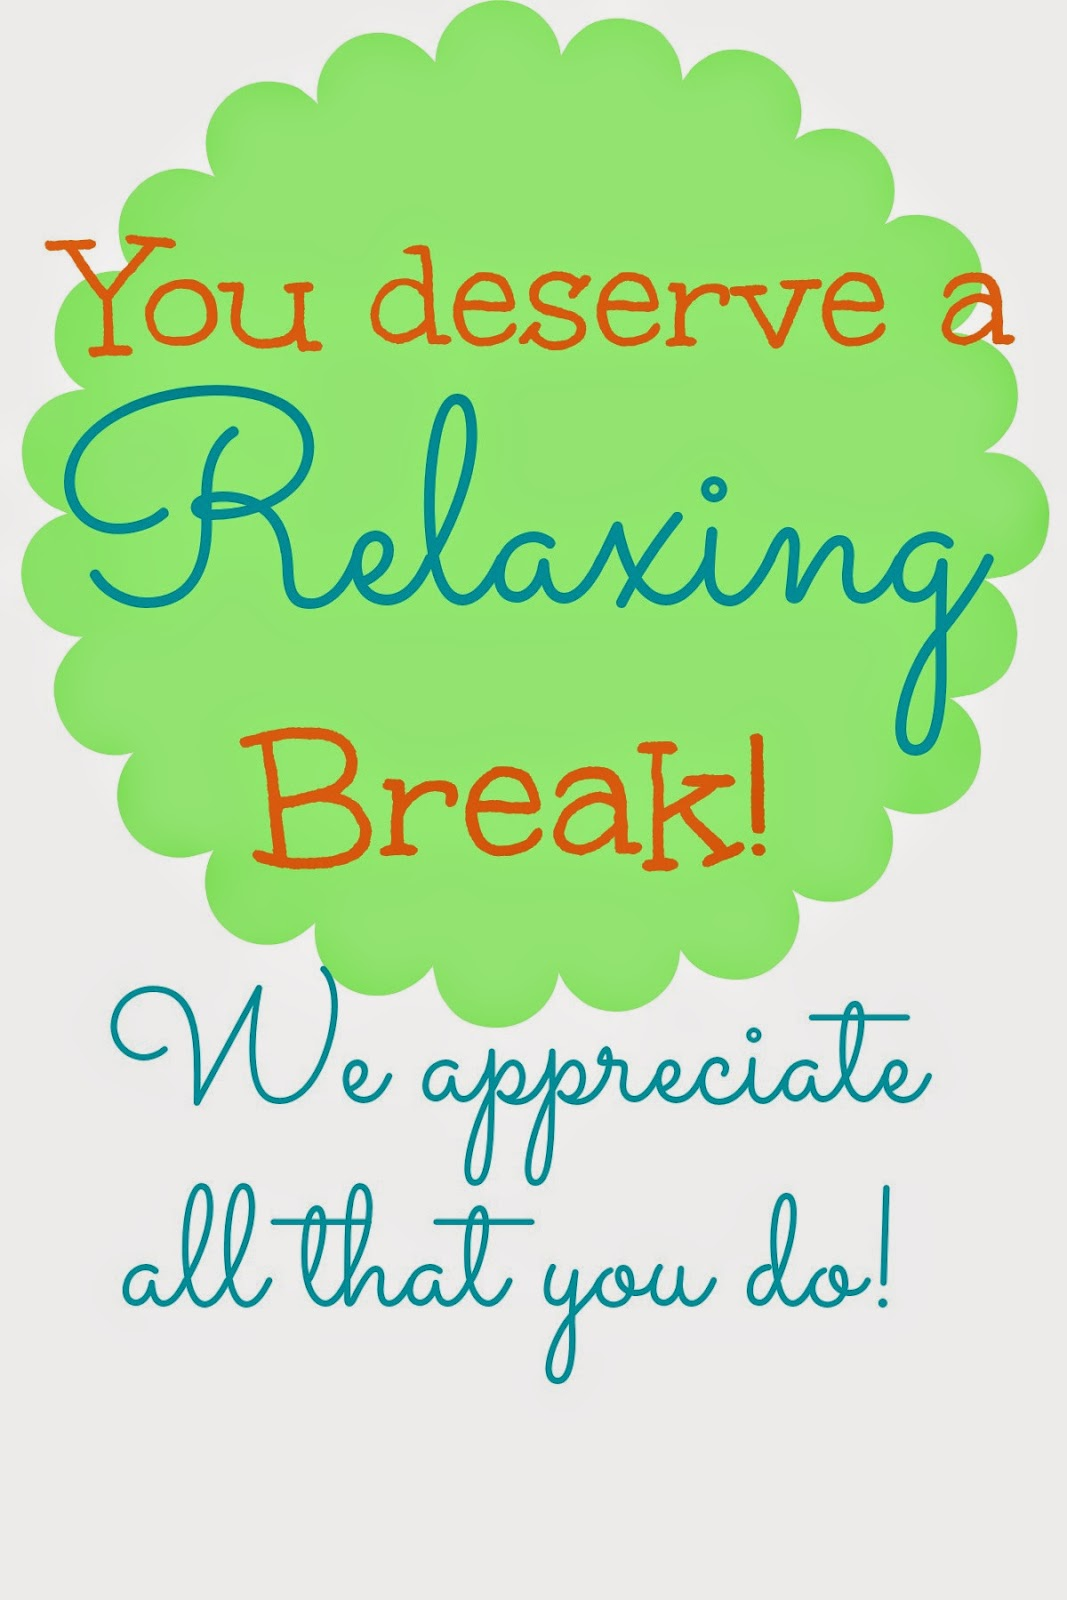 image regarding You Deserve a Break Printable identified as Fireflies and Jellybeans: Do-it-yourself Coasters (15 moment Craft